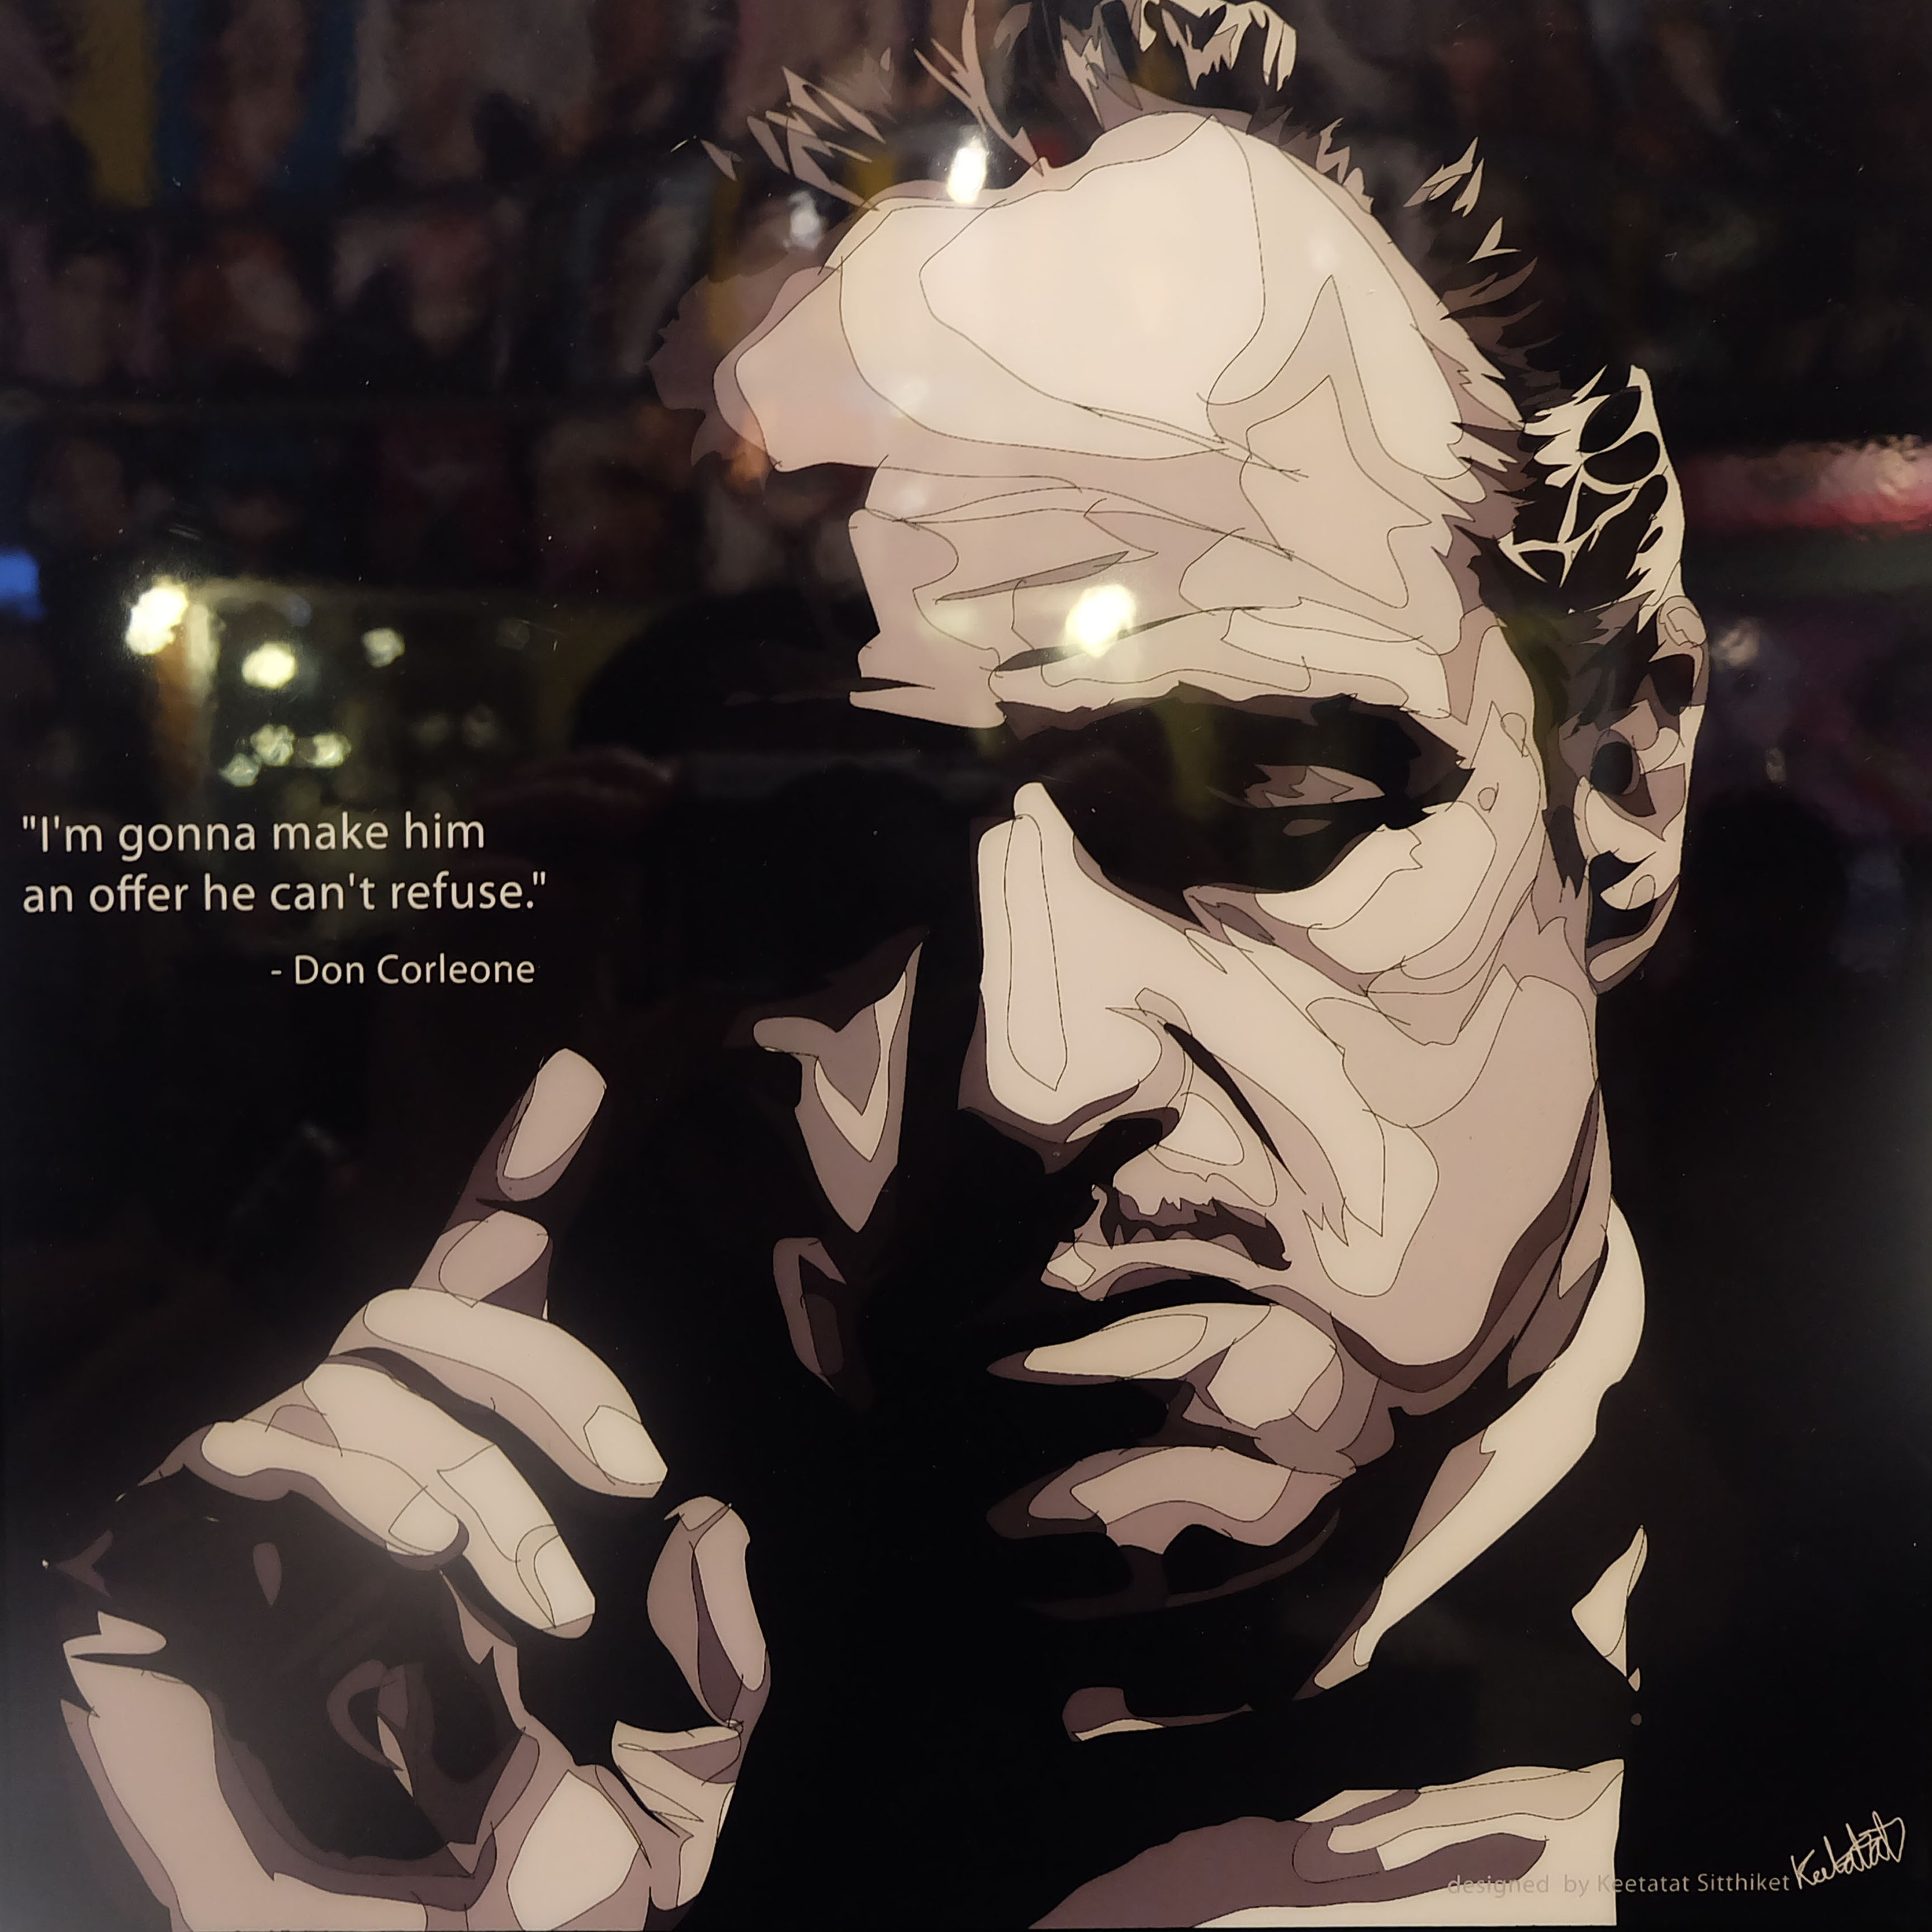 Vito corleone poster plaque im gonna make infamous inspiration vito corleone poster vito corleone poster thecheapjerseys Choice Image